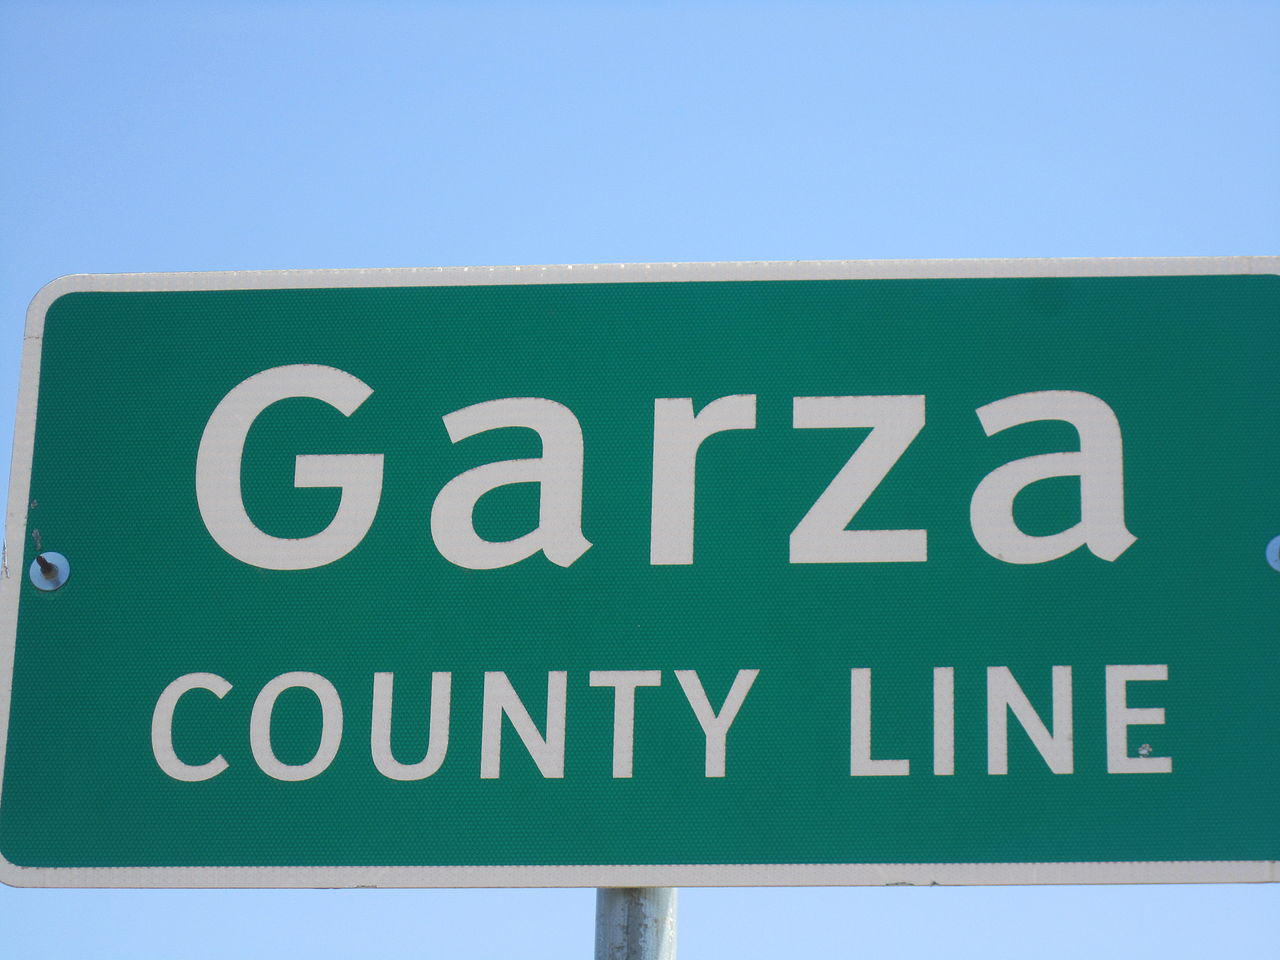 garza county Search 124 garza county texas properties for sale, including farms, ranches, recreational property, hunting property and more | page 2 of 5 | lands of texas.